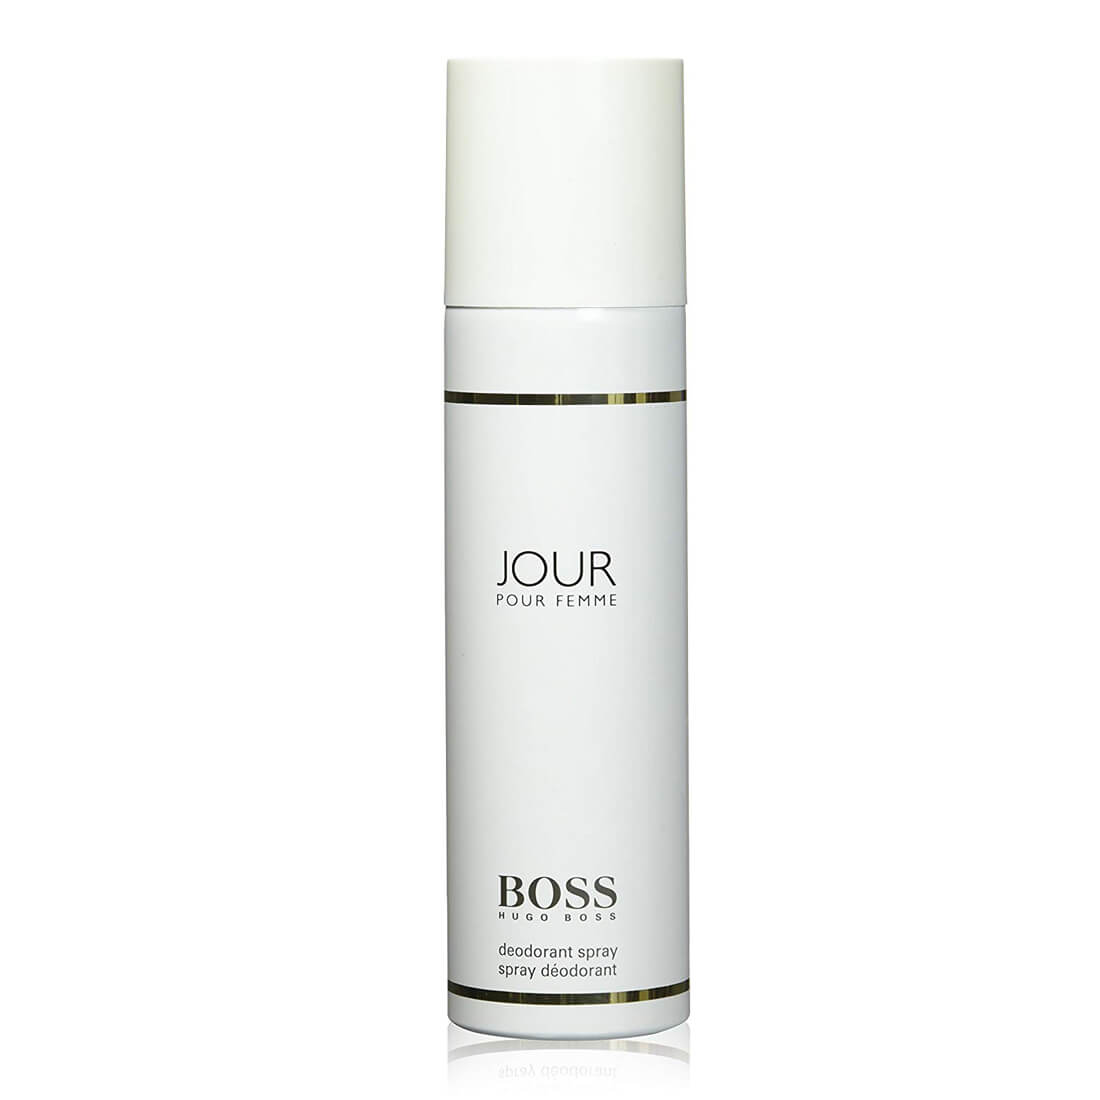 Hugo Boss Jour Pour Femme Deodorant Spray For Women - 150ml